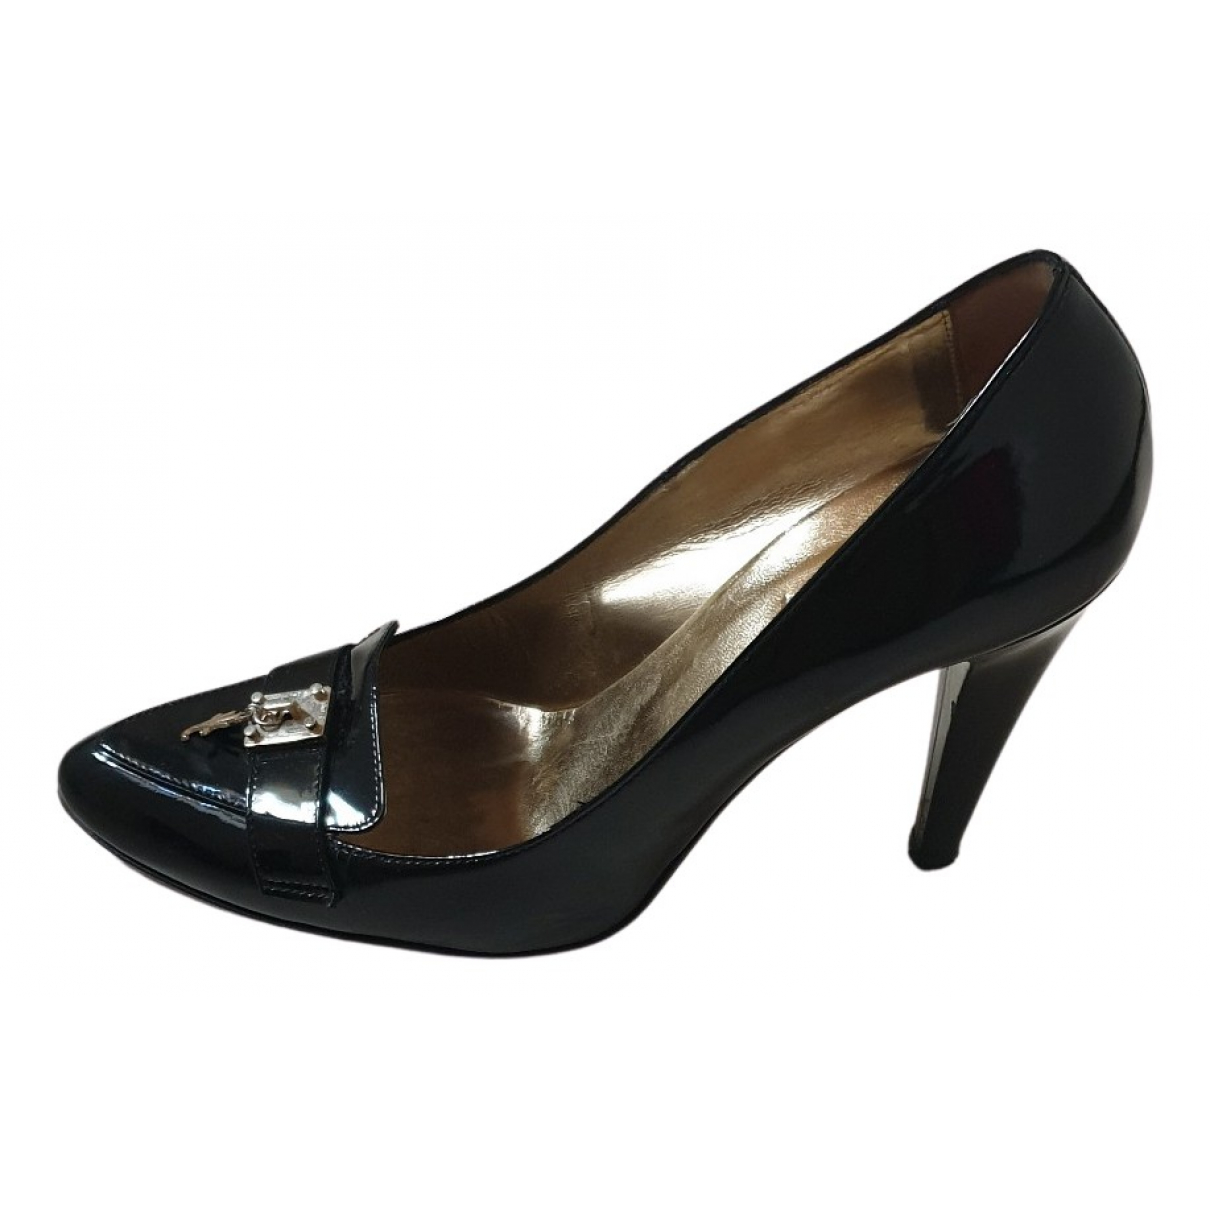 Versace Jeans N Black Patent leather Heels for Women 40 EU